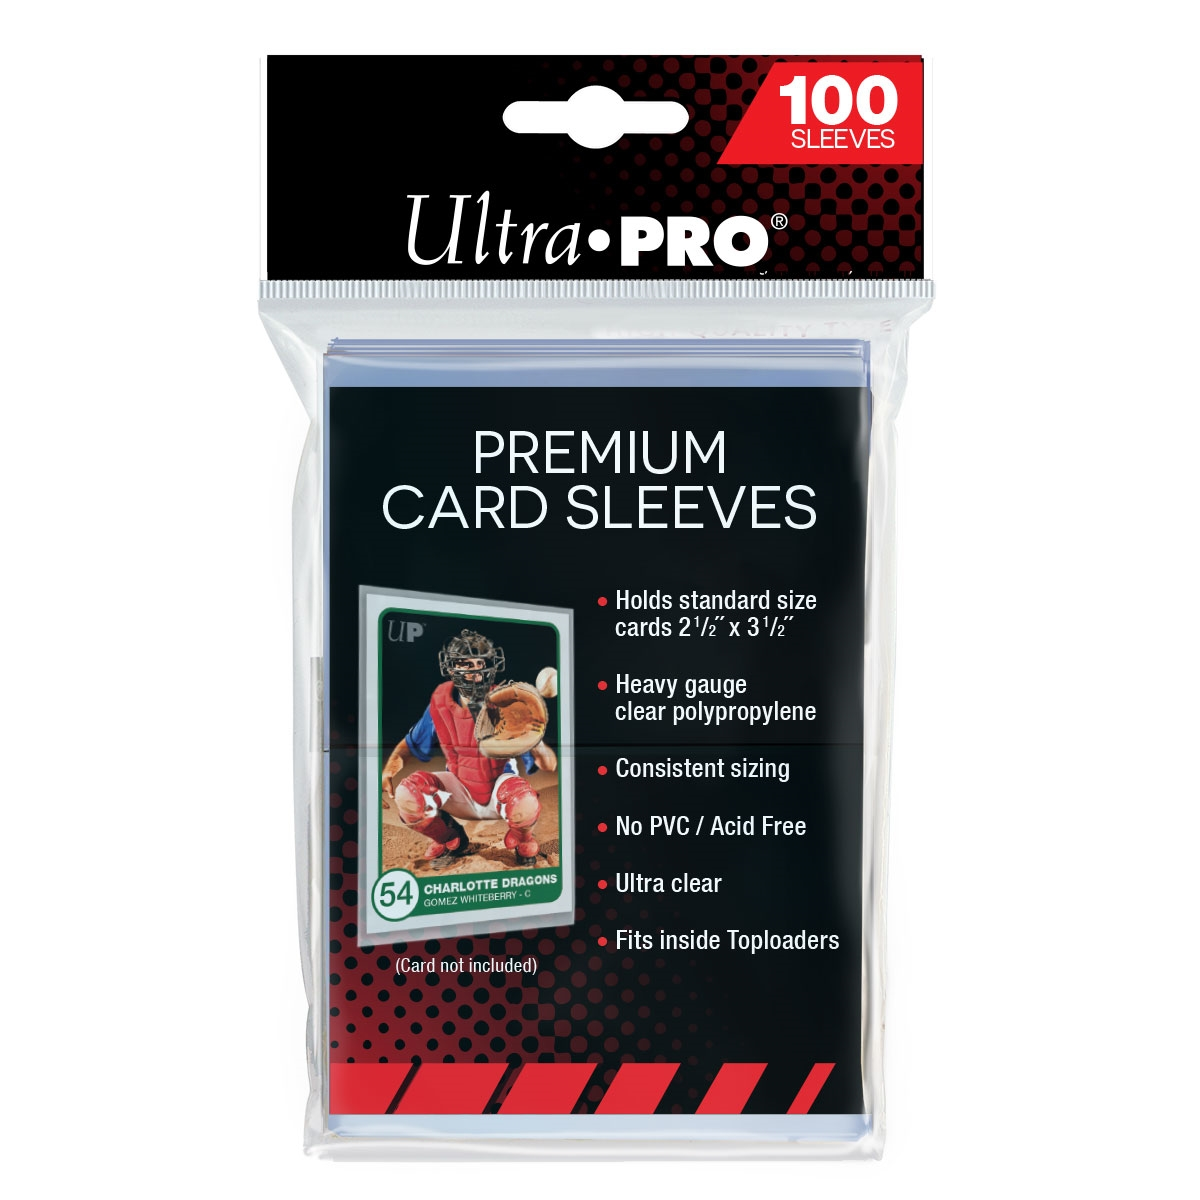 Ultra Pro Premium Card Sleeves 100 count